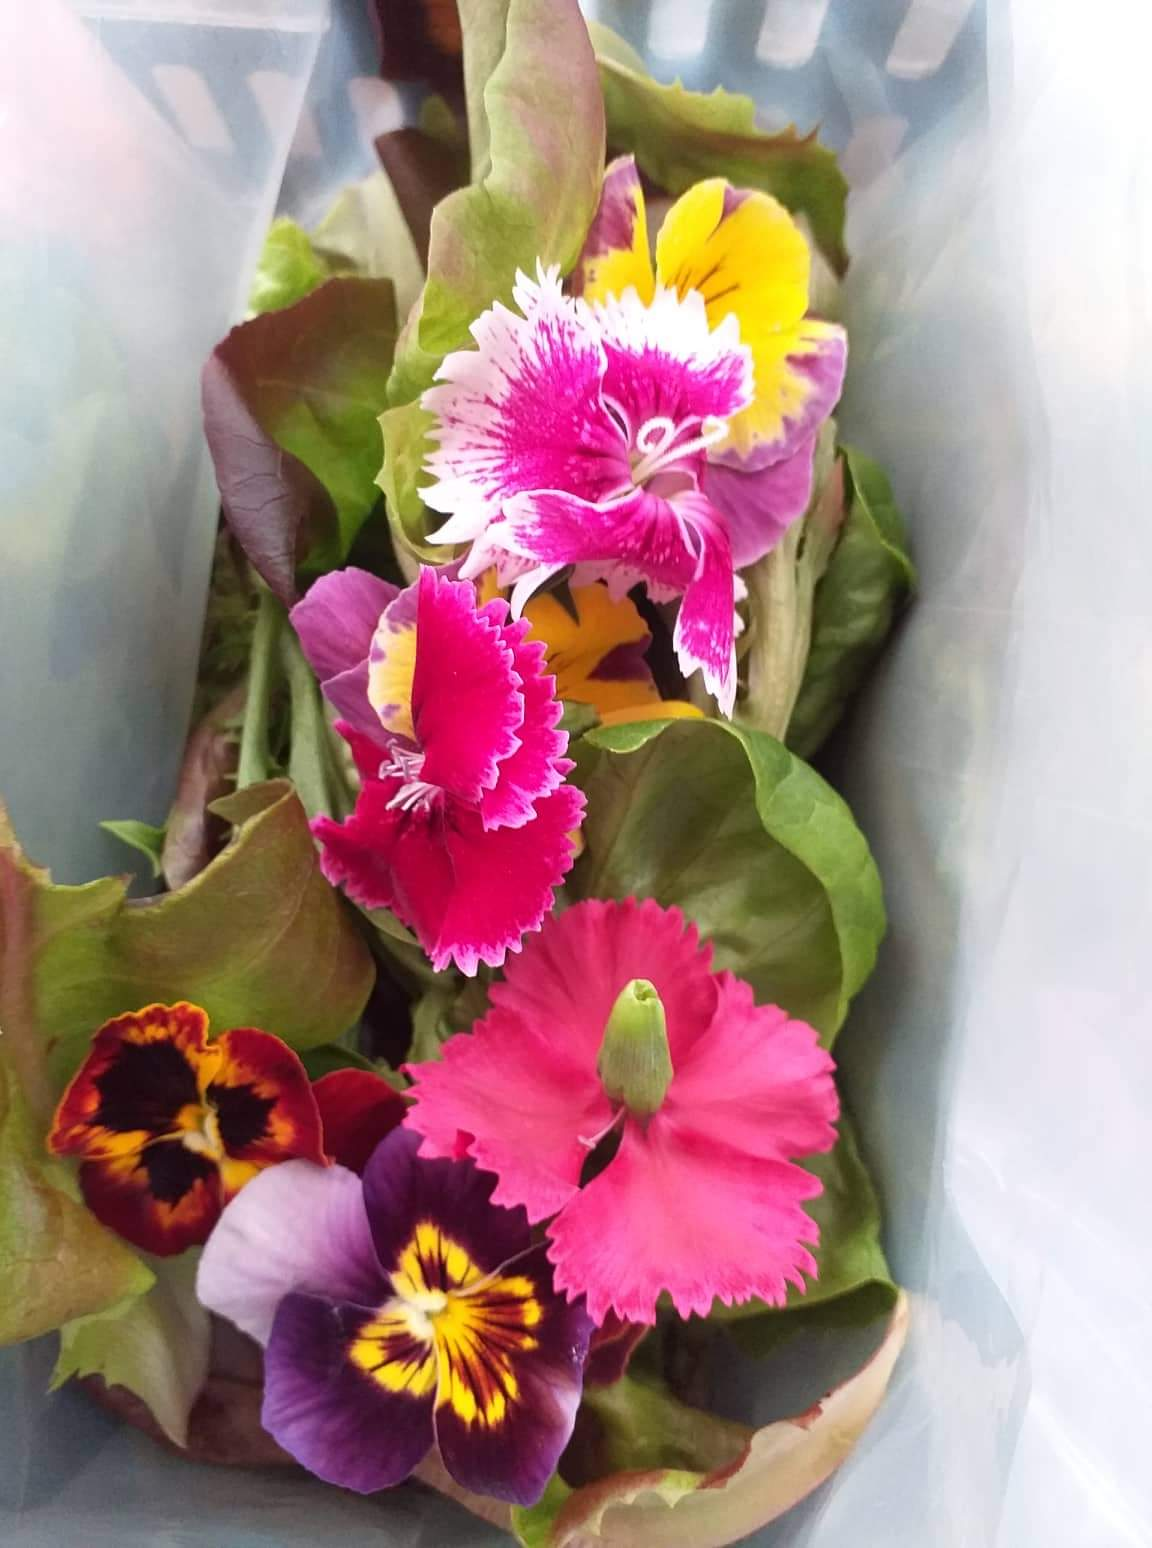 Salad Mix with Edible Flowers